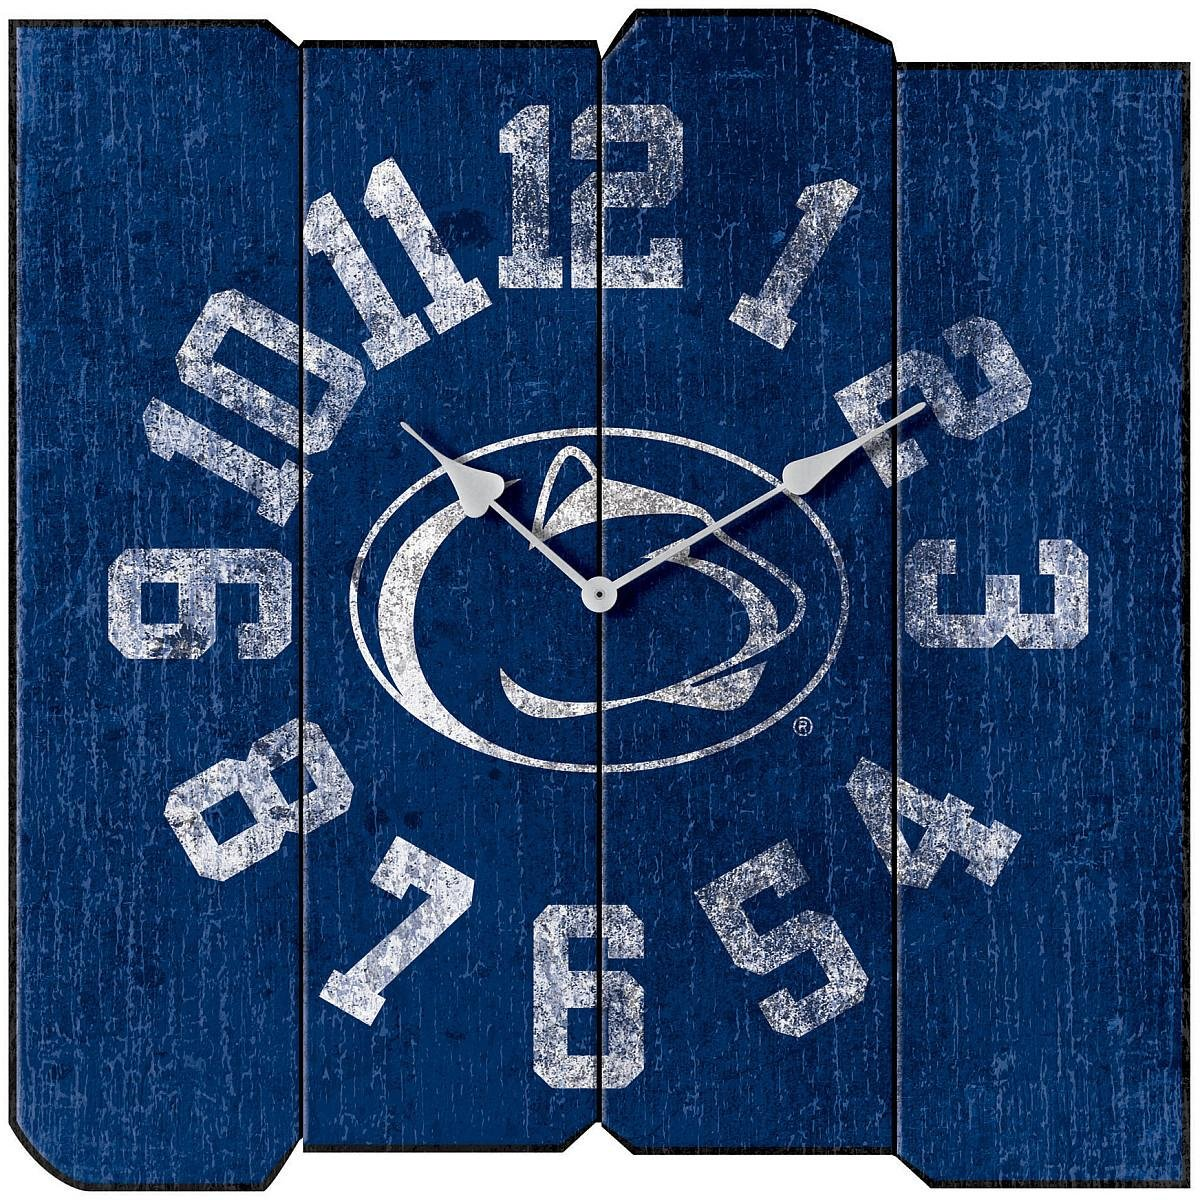 Imperial Officially Licensed NCAA Merchandise: Vintage Square Clock, Penn State Nittany Lions by Imperial